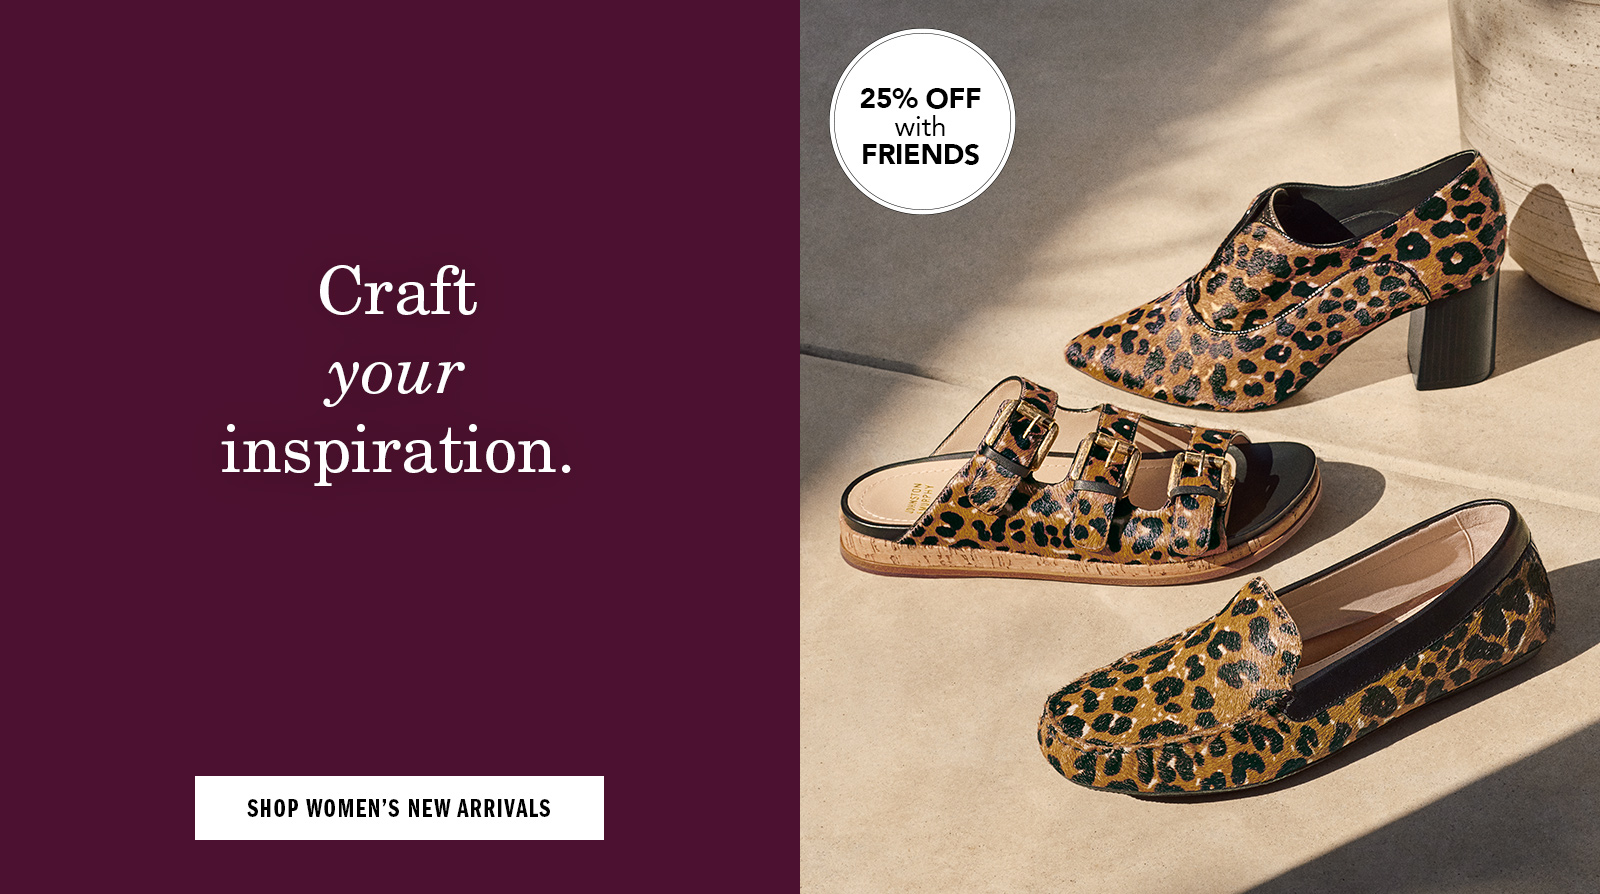 Craft your inspiration. - Shop Women's Shoes